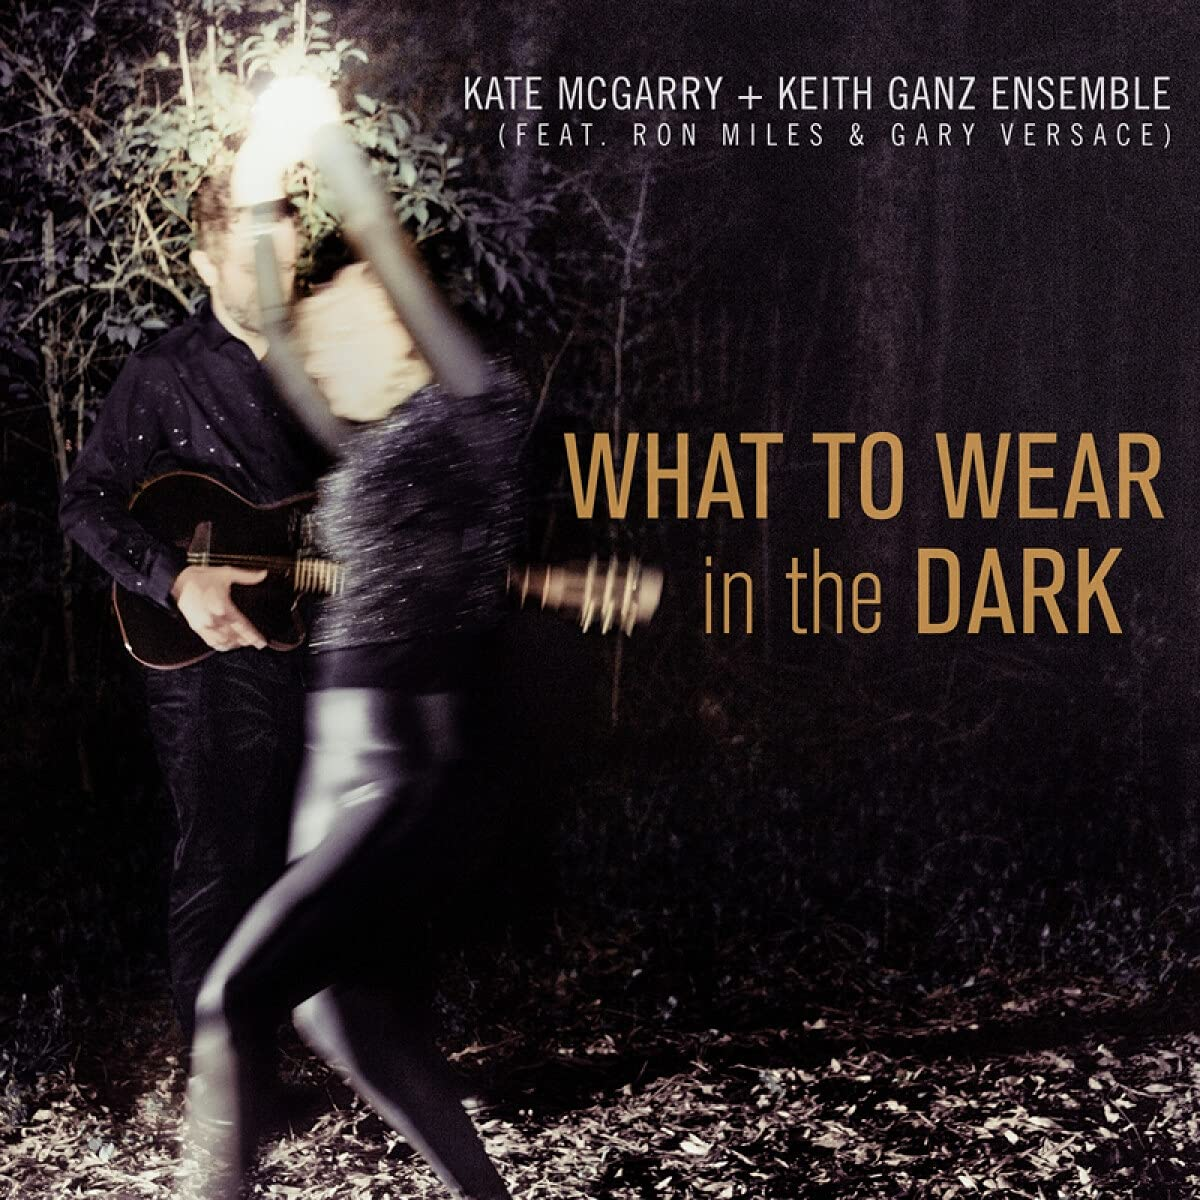 KATE MCGARRY - Kate McGarry & Keith Ganz Ensemble : What To Wear In The Dark cover